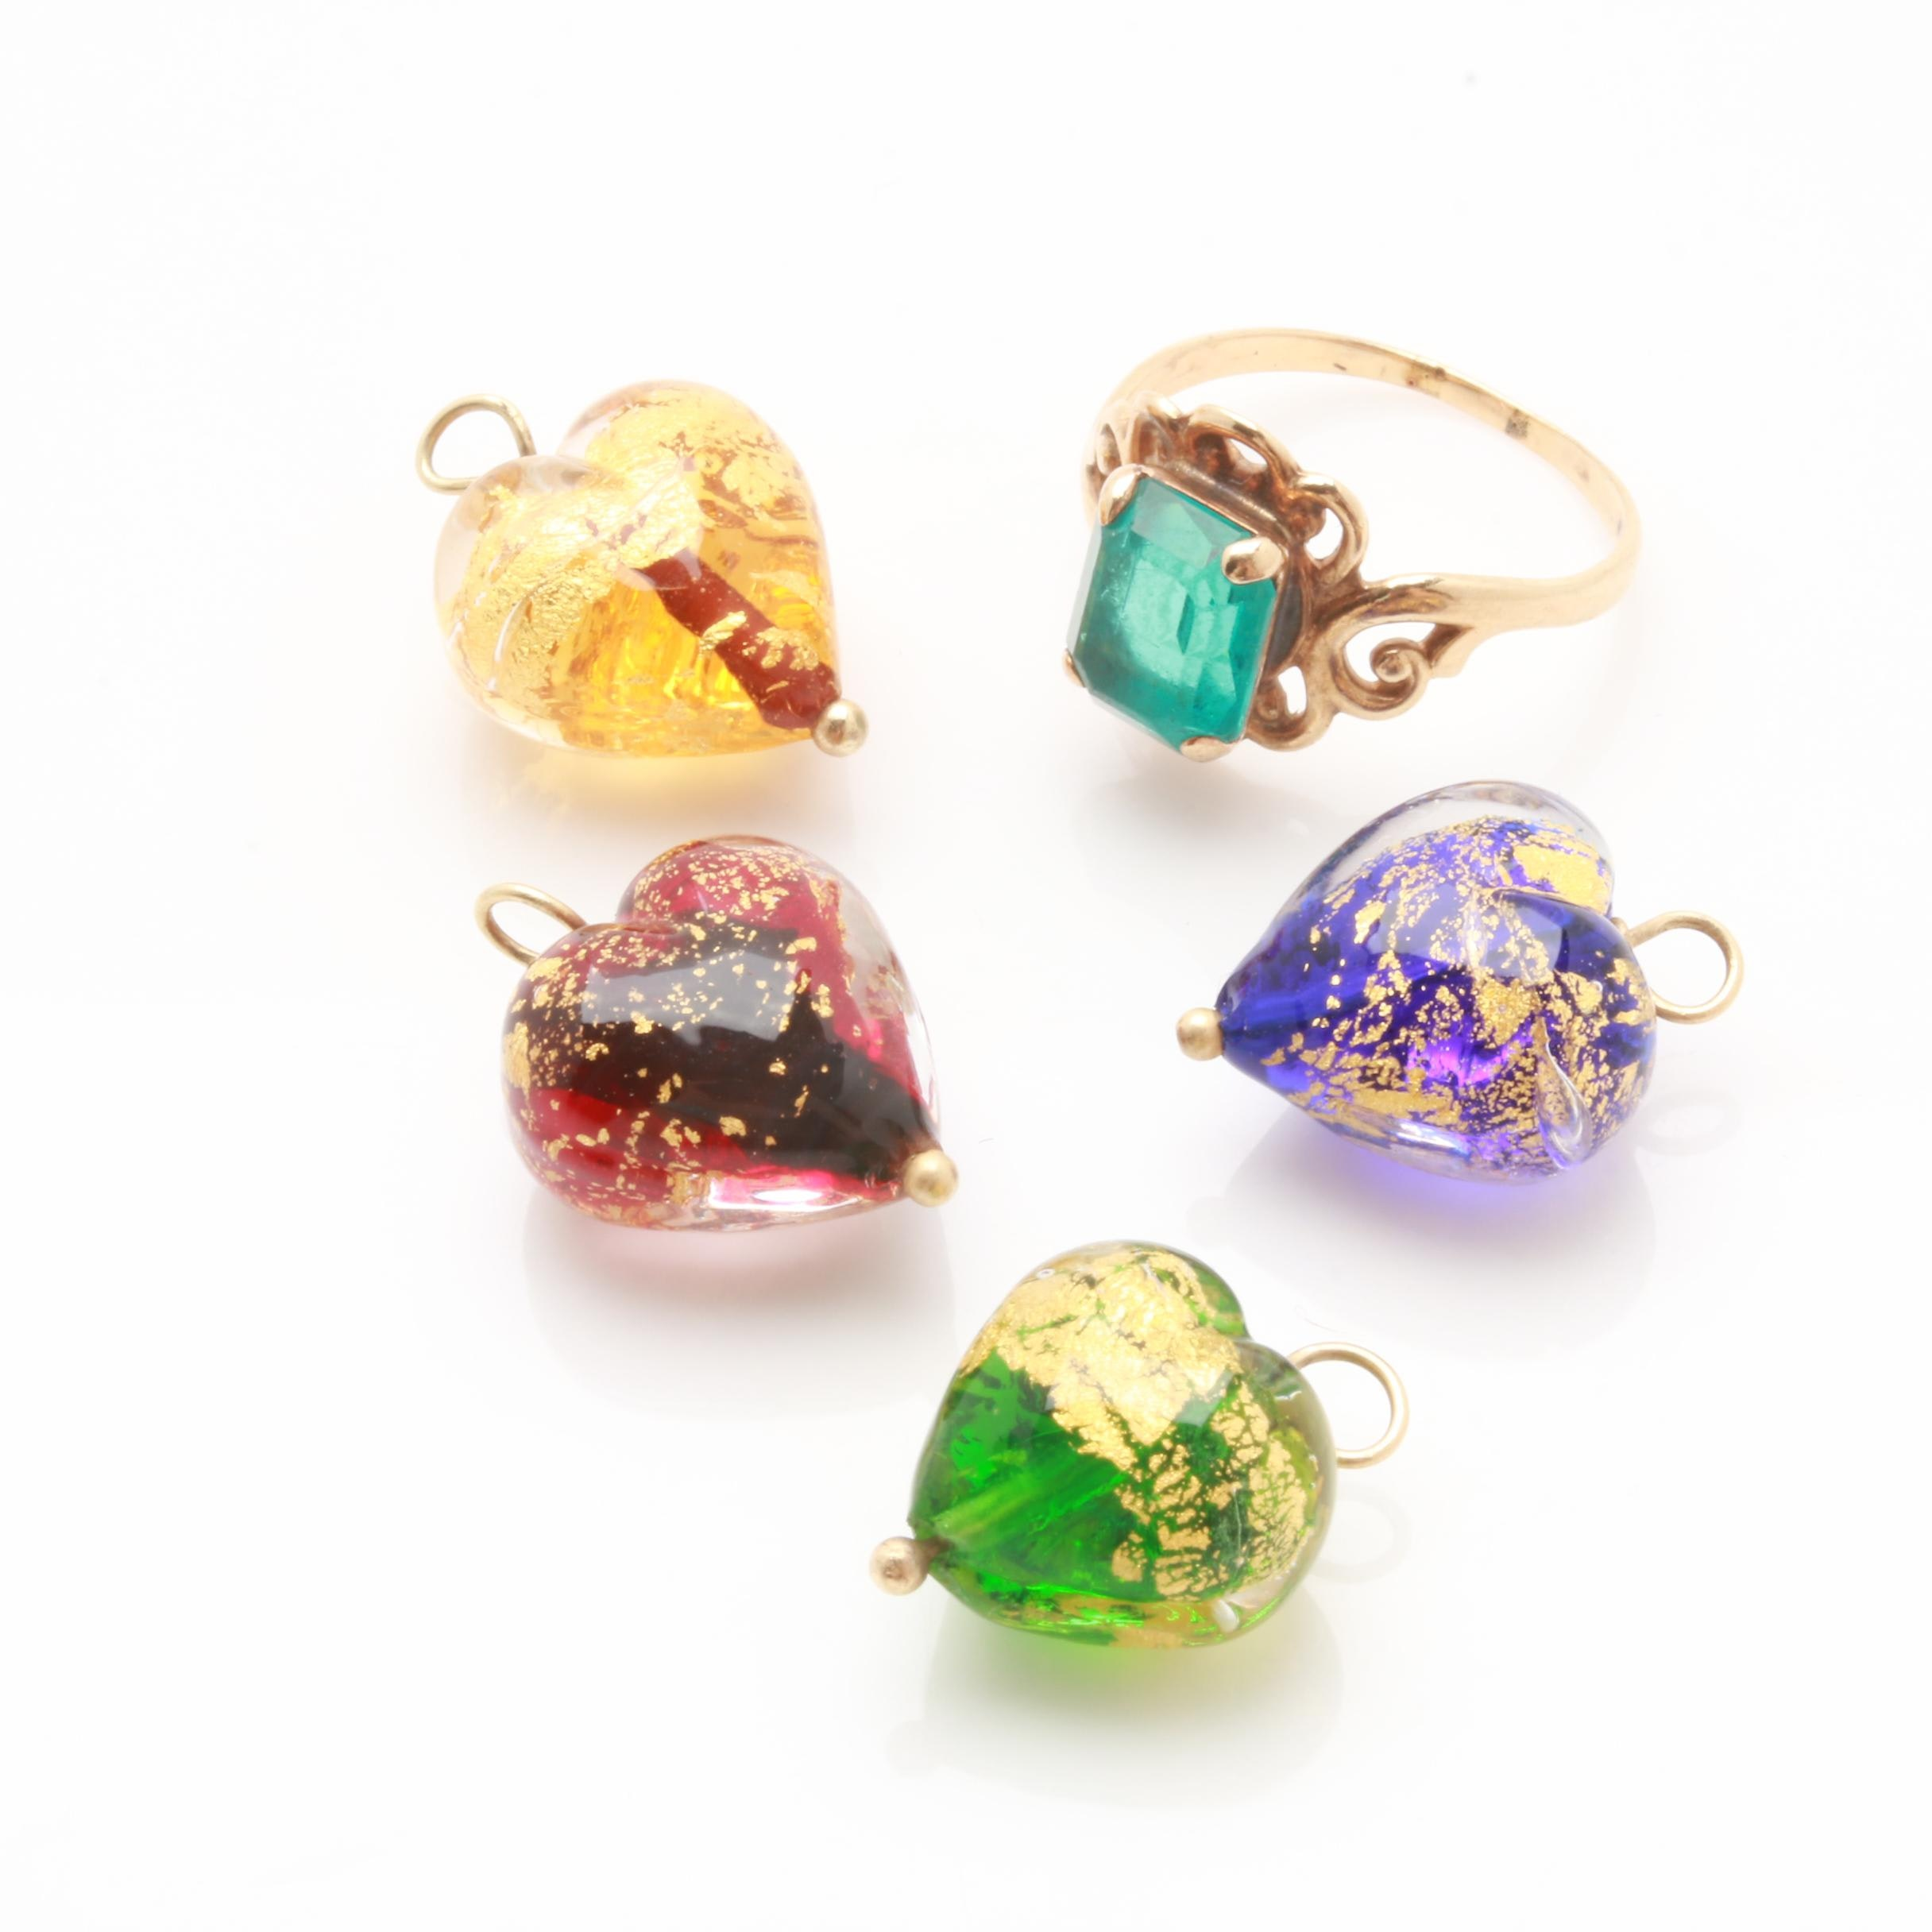 14K Yellow Gold Glass Ring and Glass Heart Charms